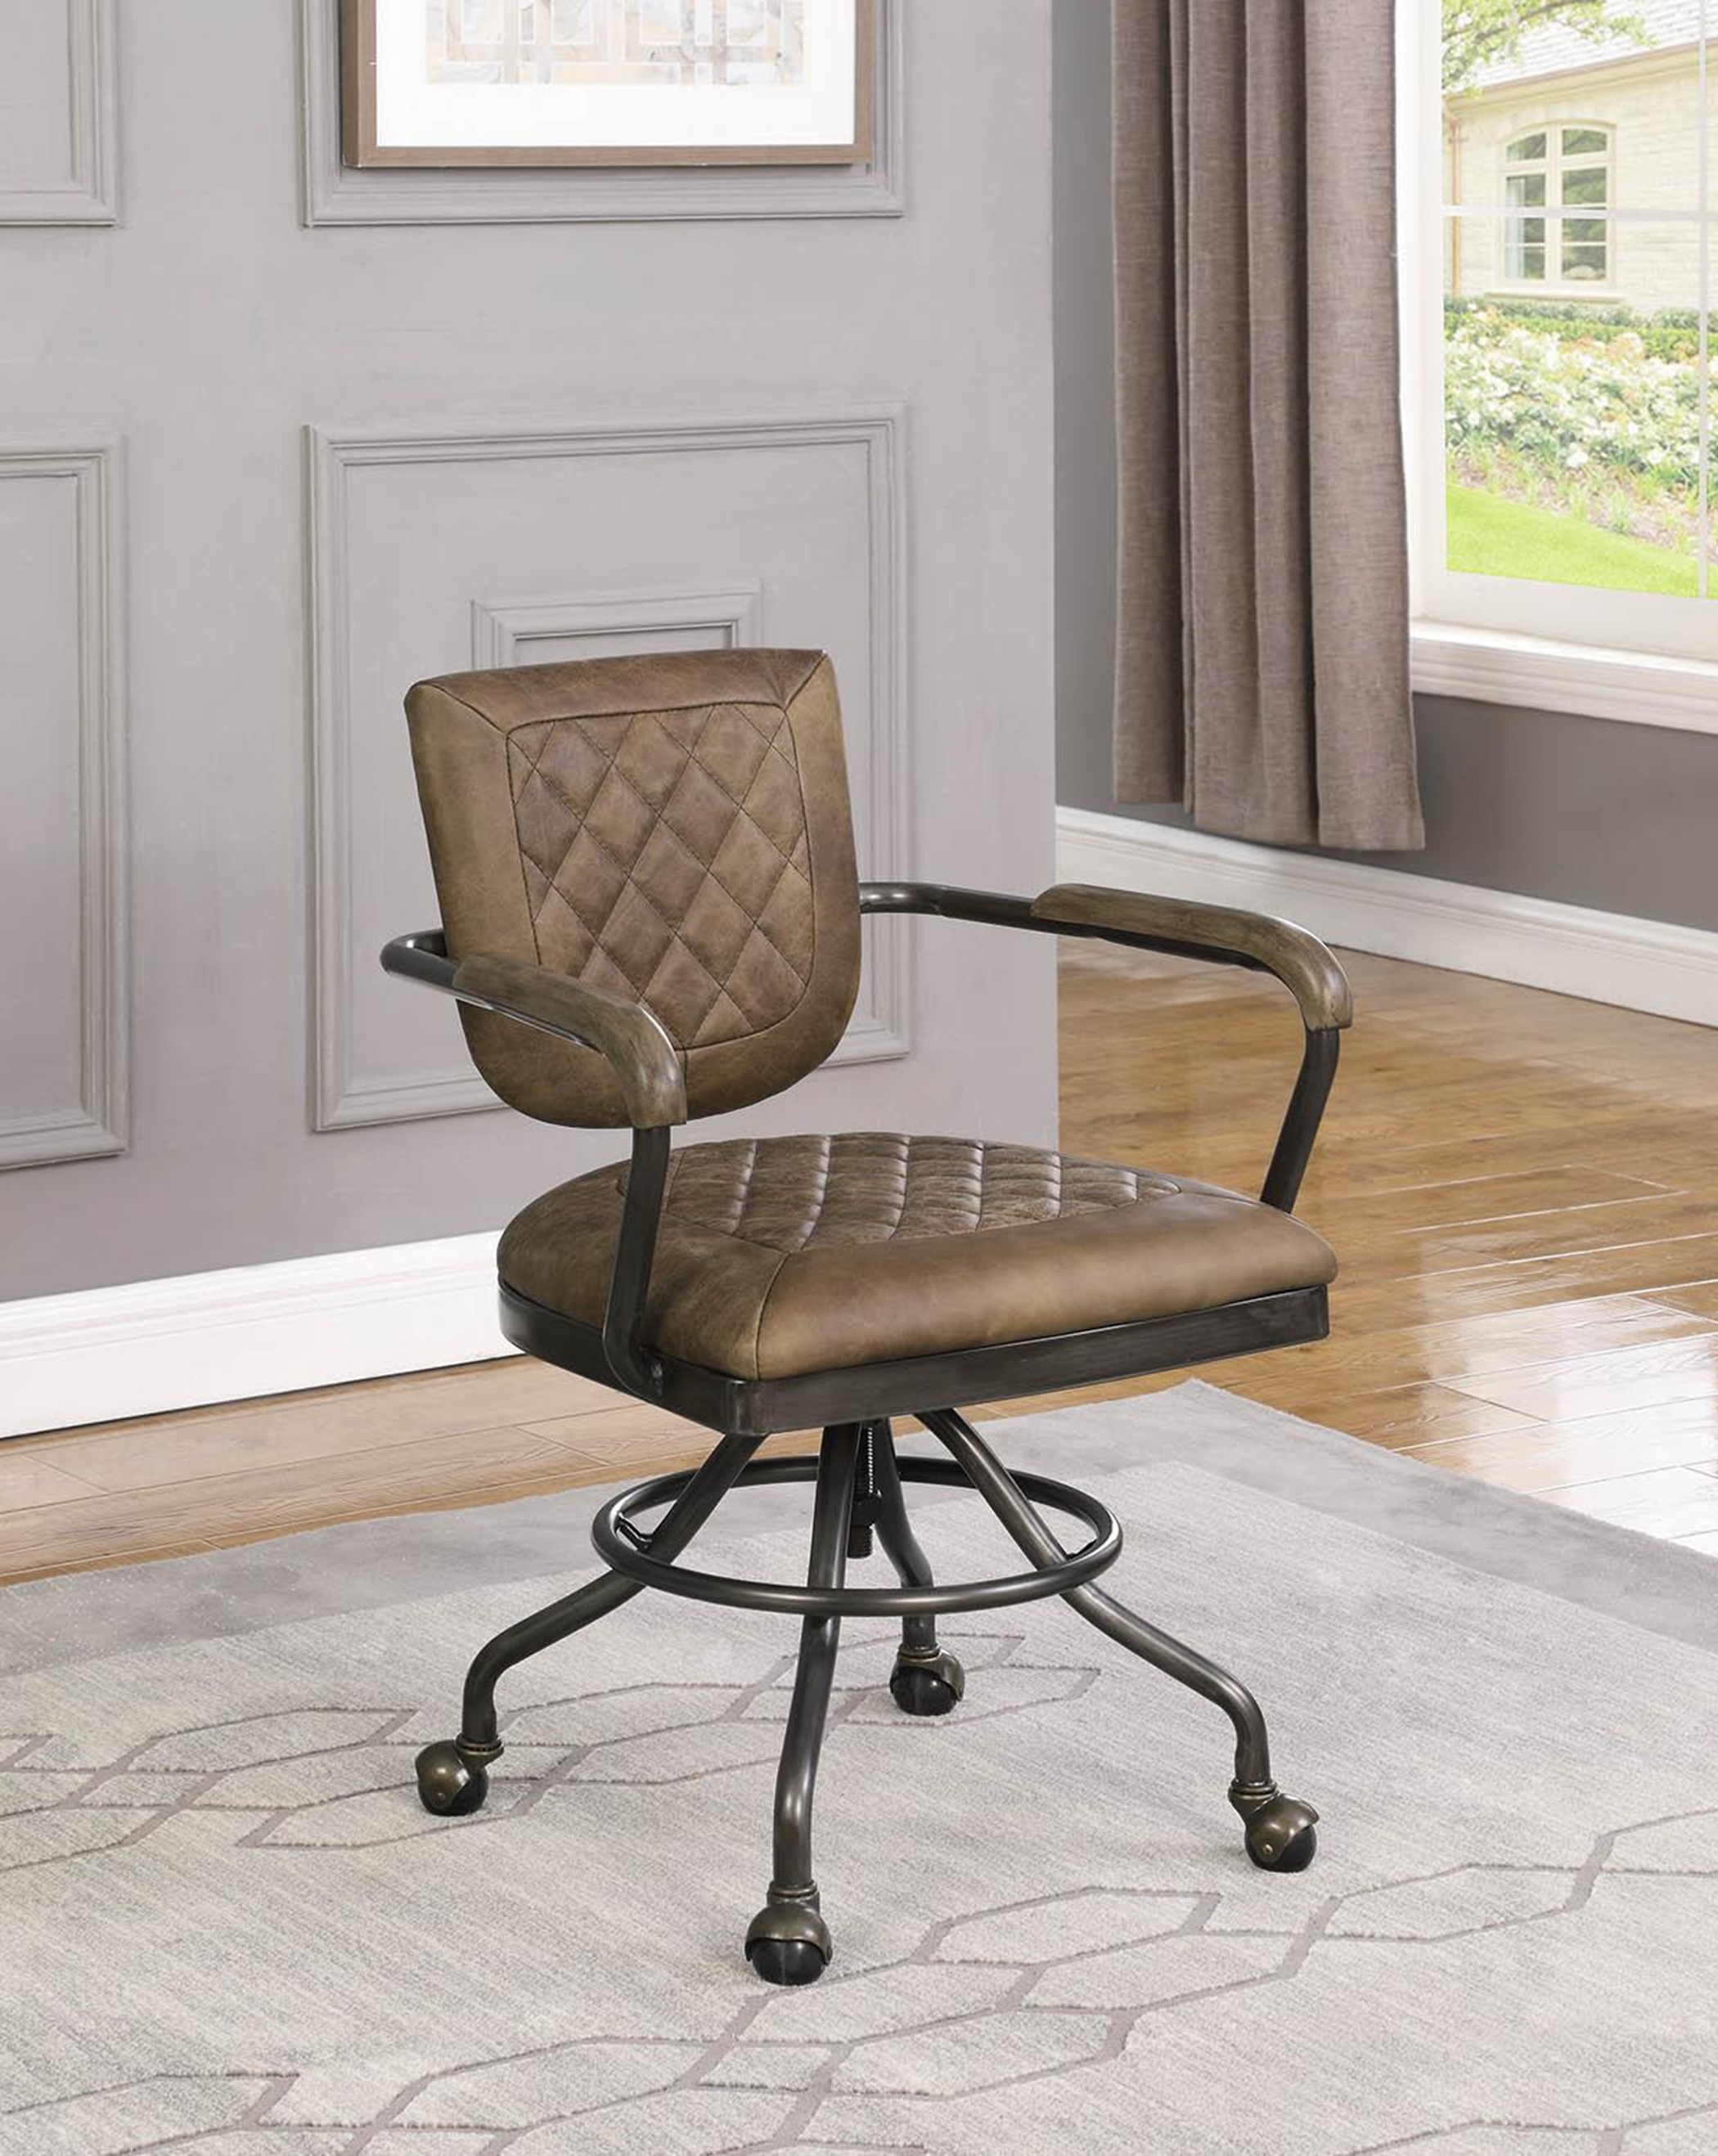 802185 - Office Chair